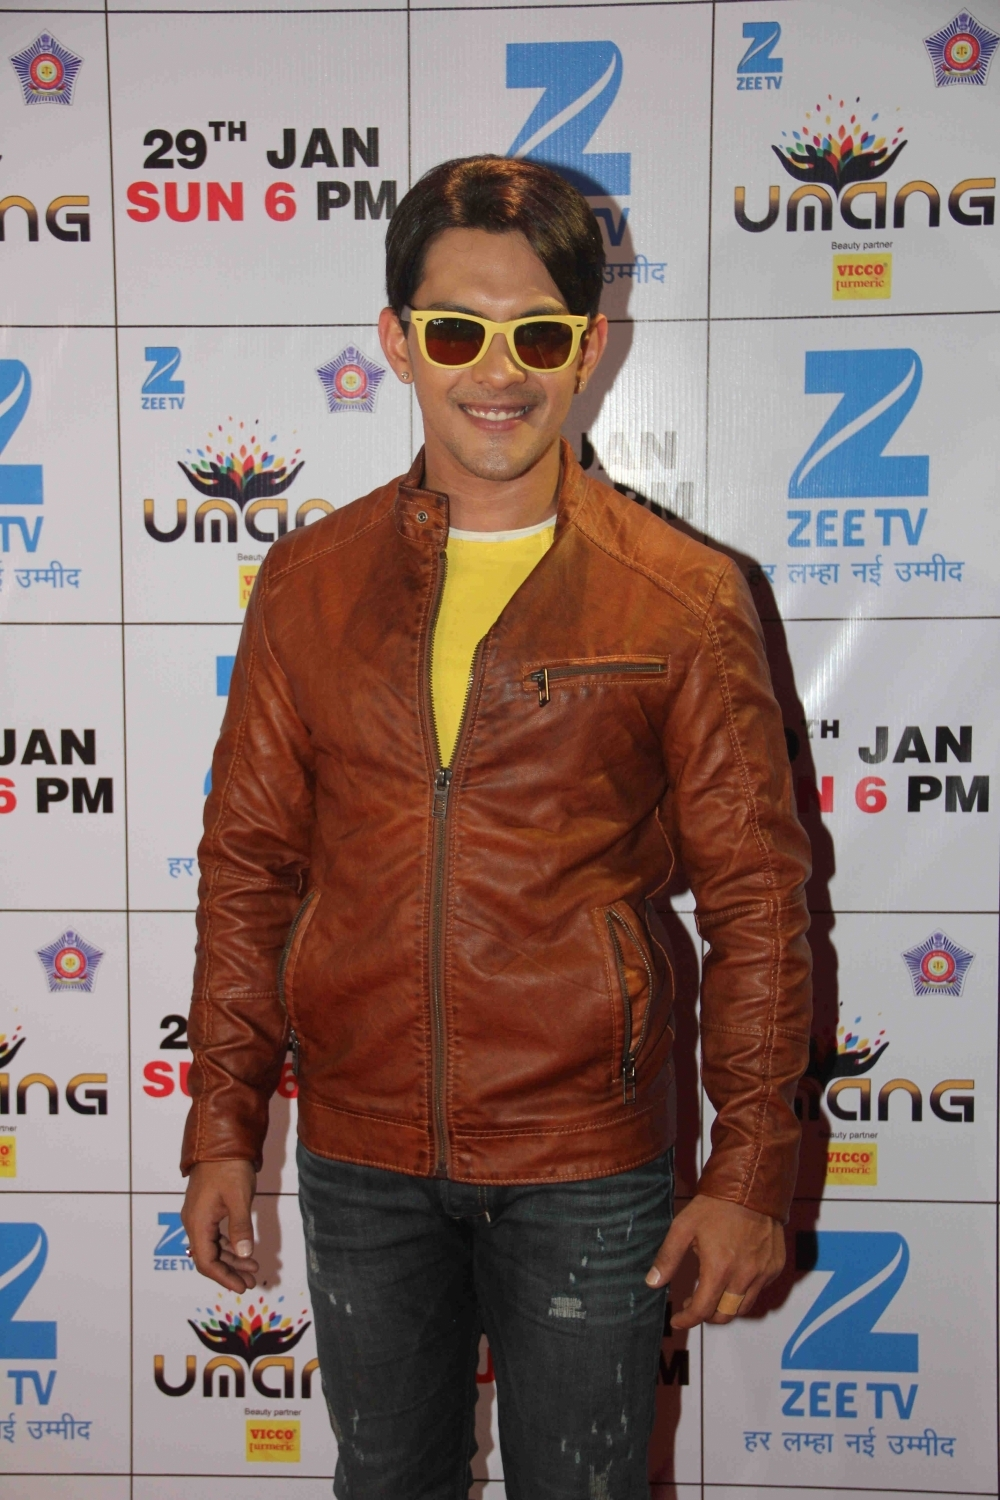 Mumbai: Singer Aditya Narayan during the Umang Mumbai Police Show 2017 in Mumbai on Jan 22, 2017. (Photo: IANS)